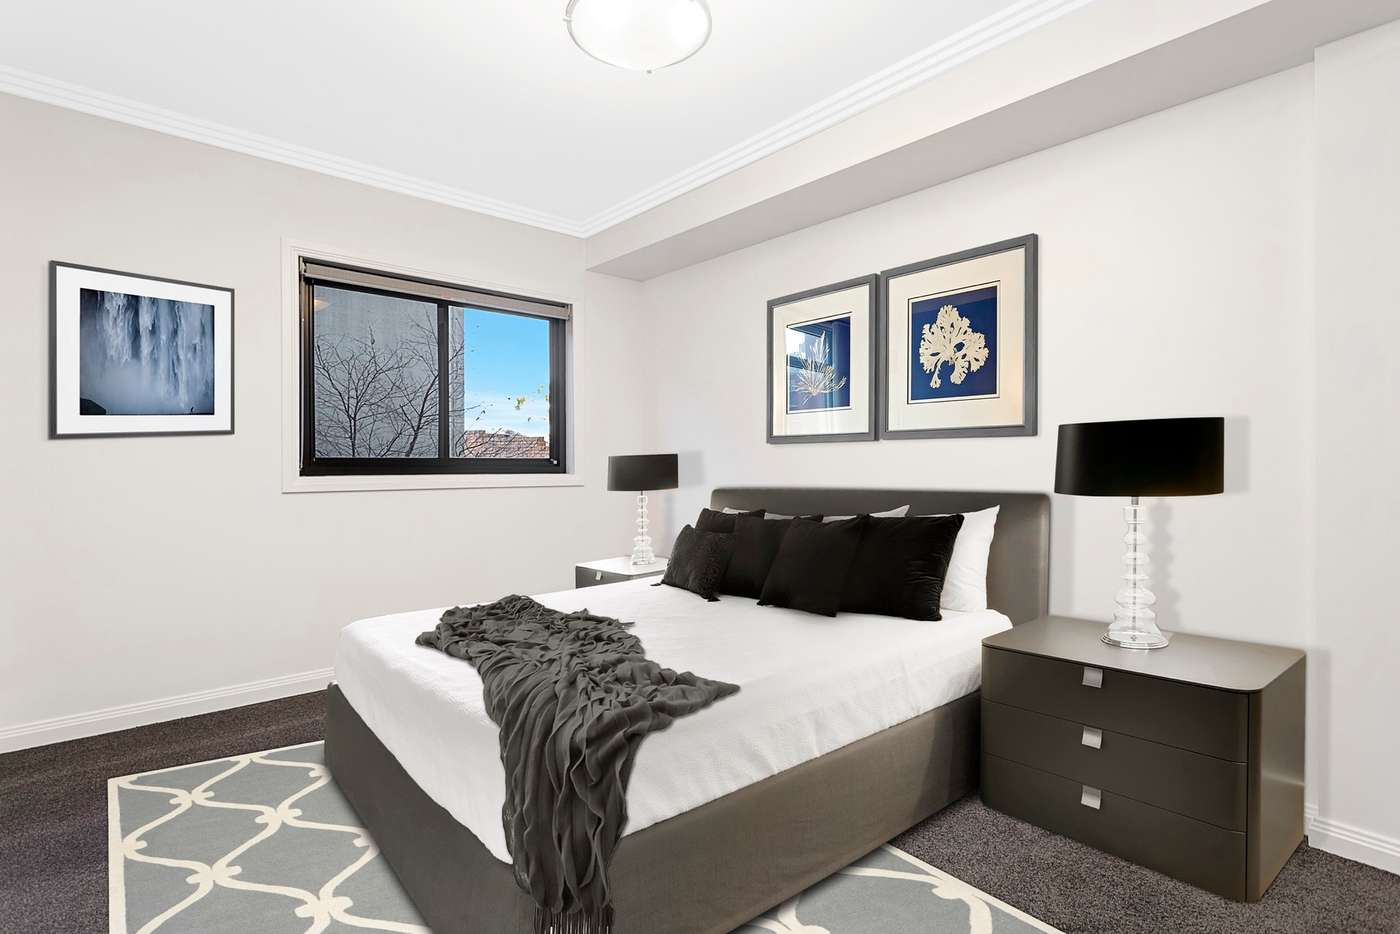 Fifth view of Homely apartment listing, 10/105 Church Street, Parramatta NSW 2150